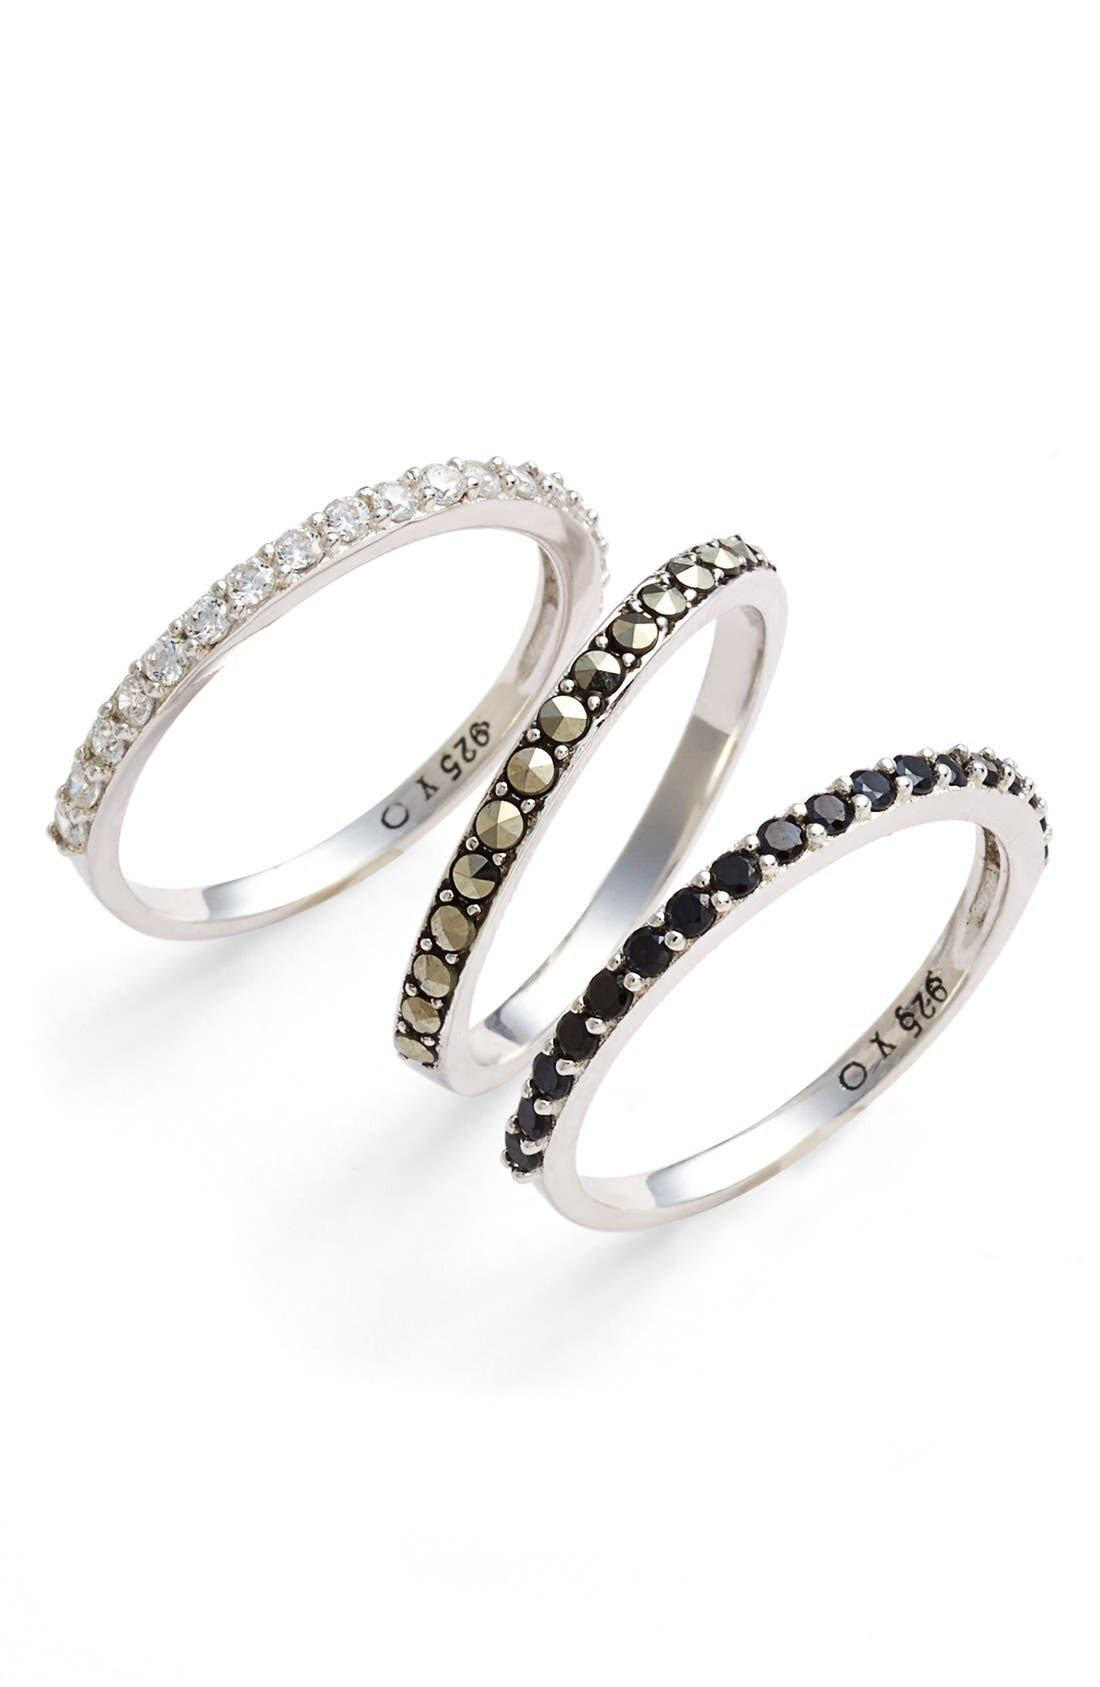 Alternate Image 1 Selected - Judith Jack 'Rings & Things' Stackable Rings (Set of 3)